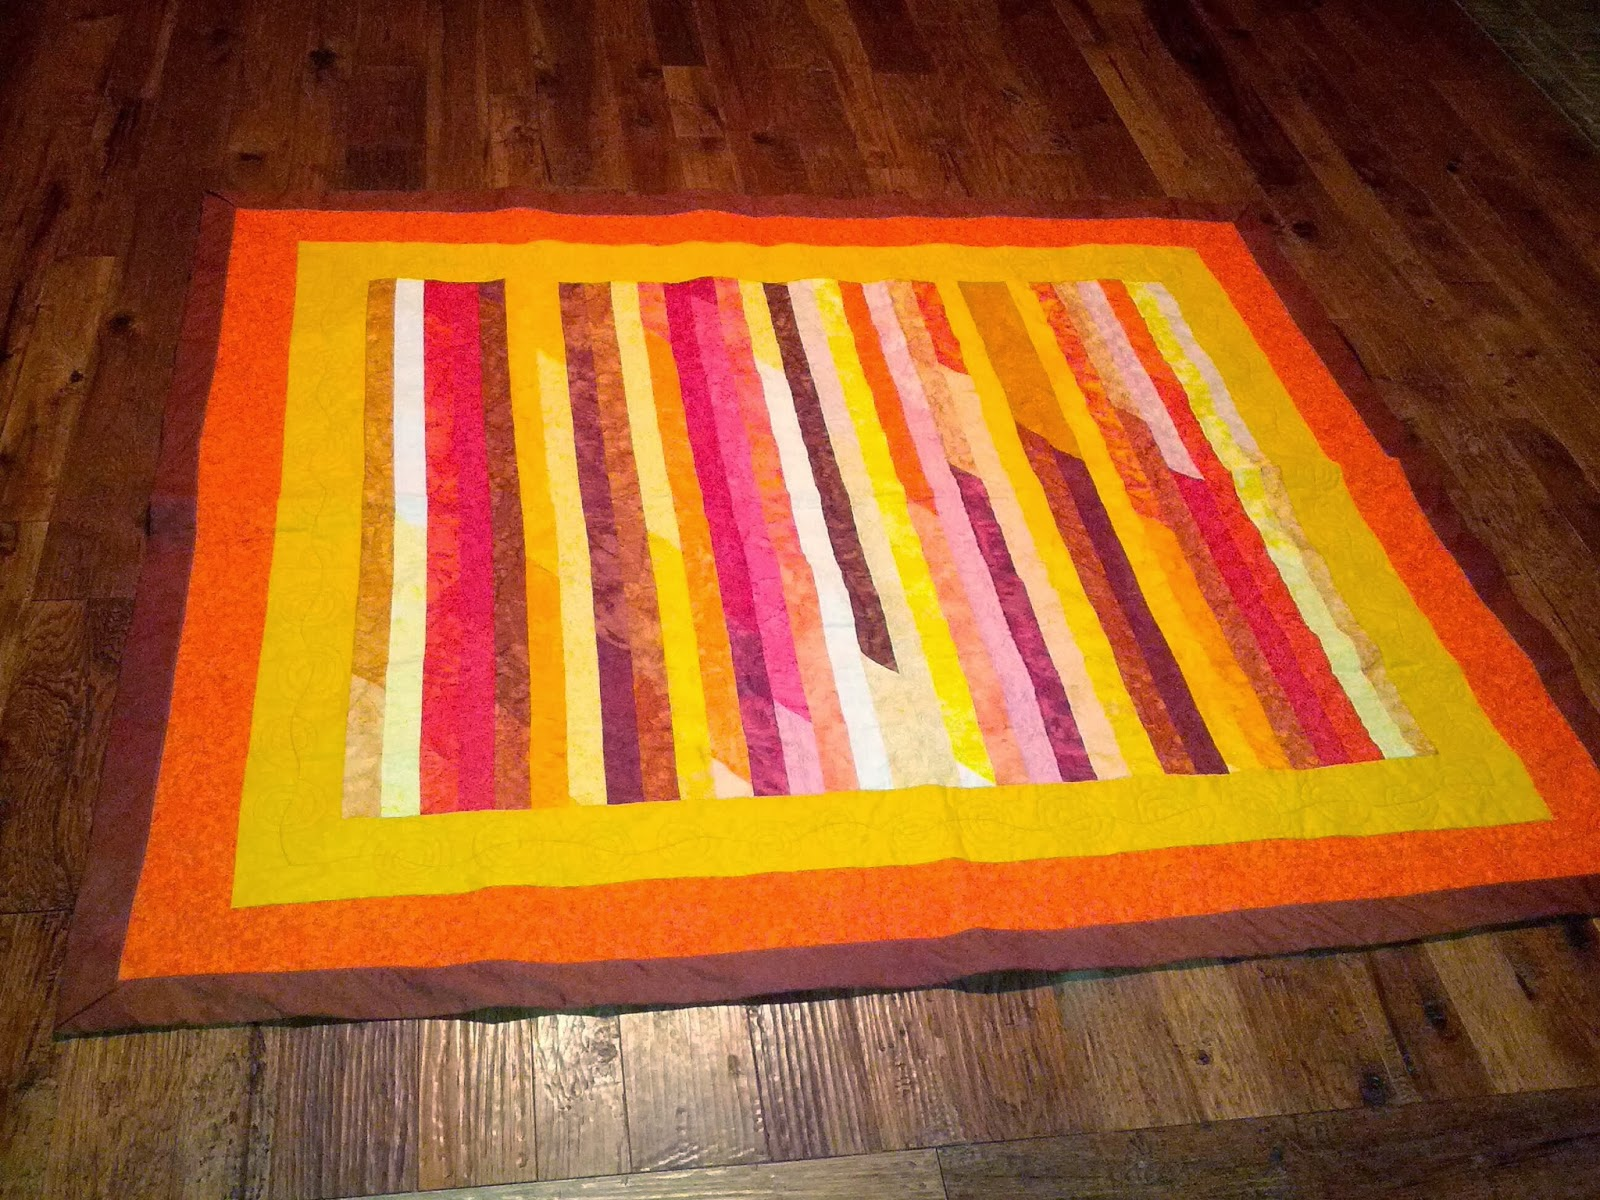 http://www.quiltparadigm.blogspot.com/2014/01/my-favorite-to-date-qayg.html